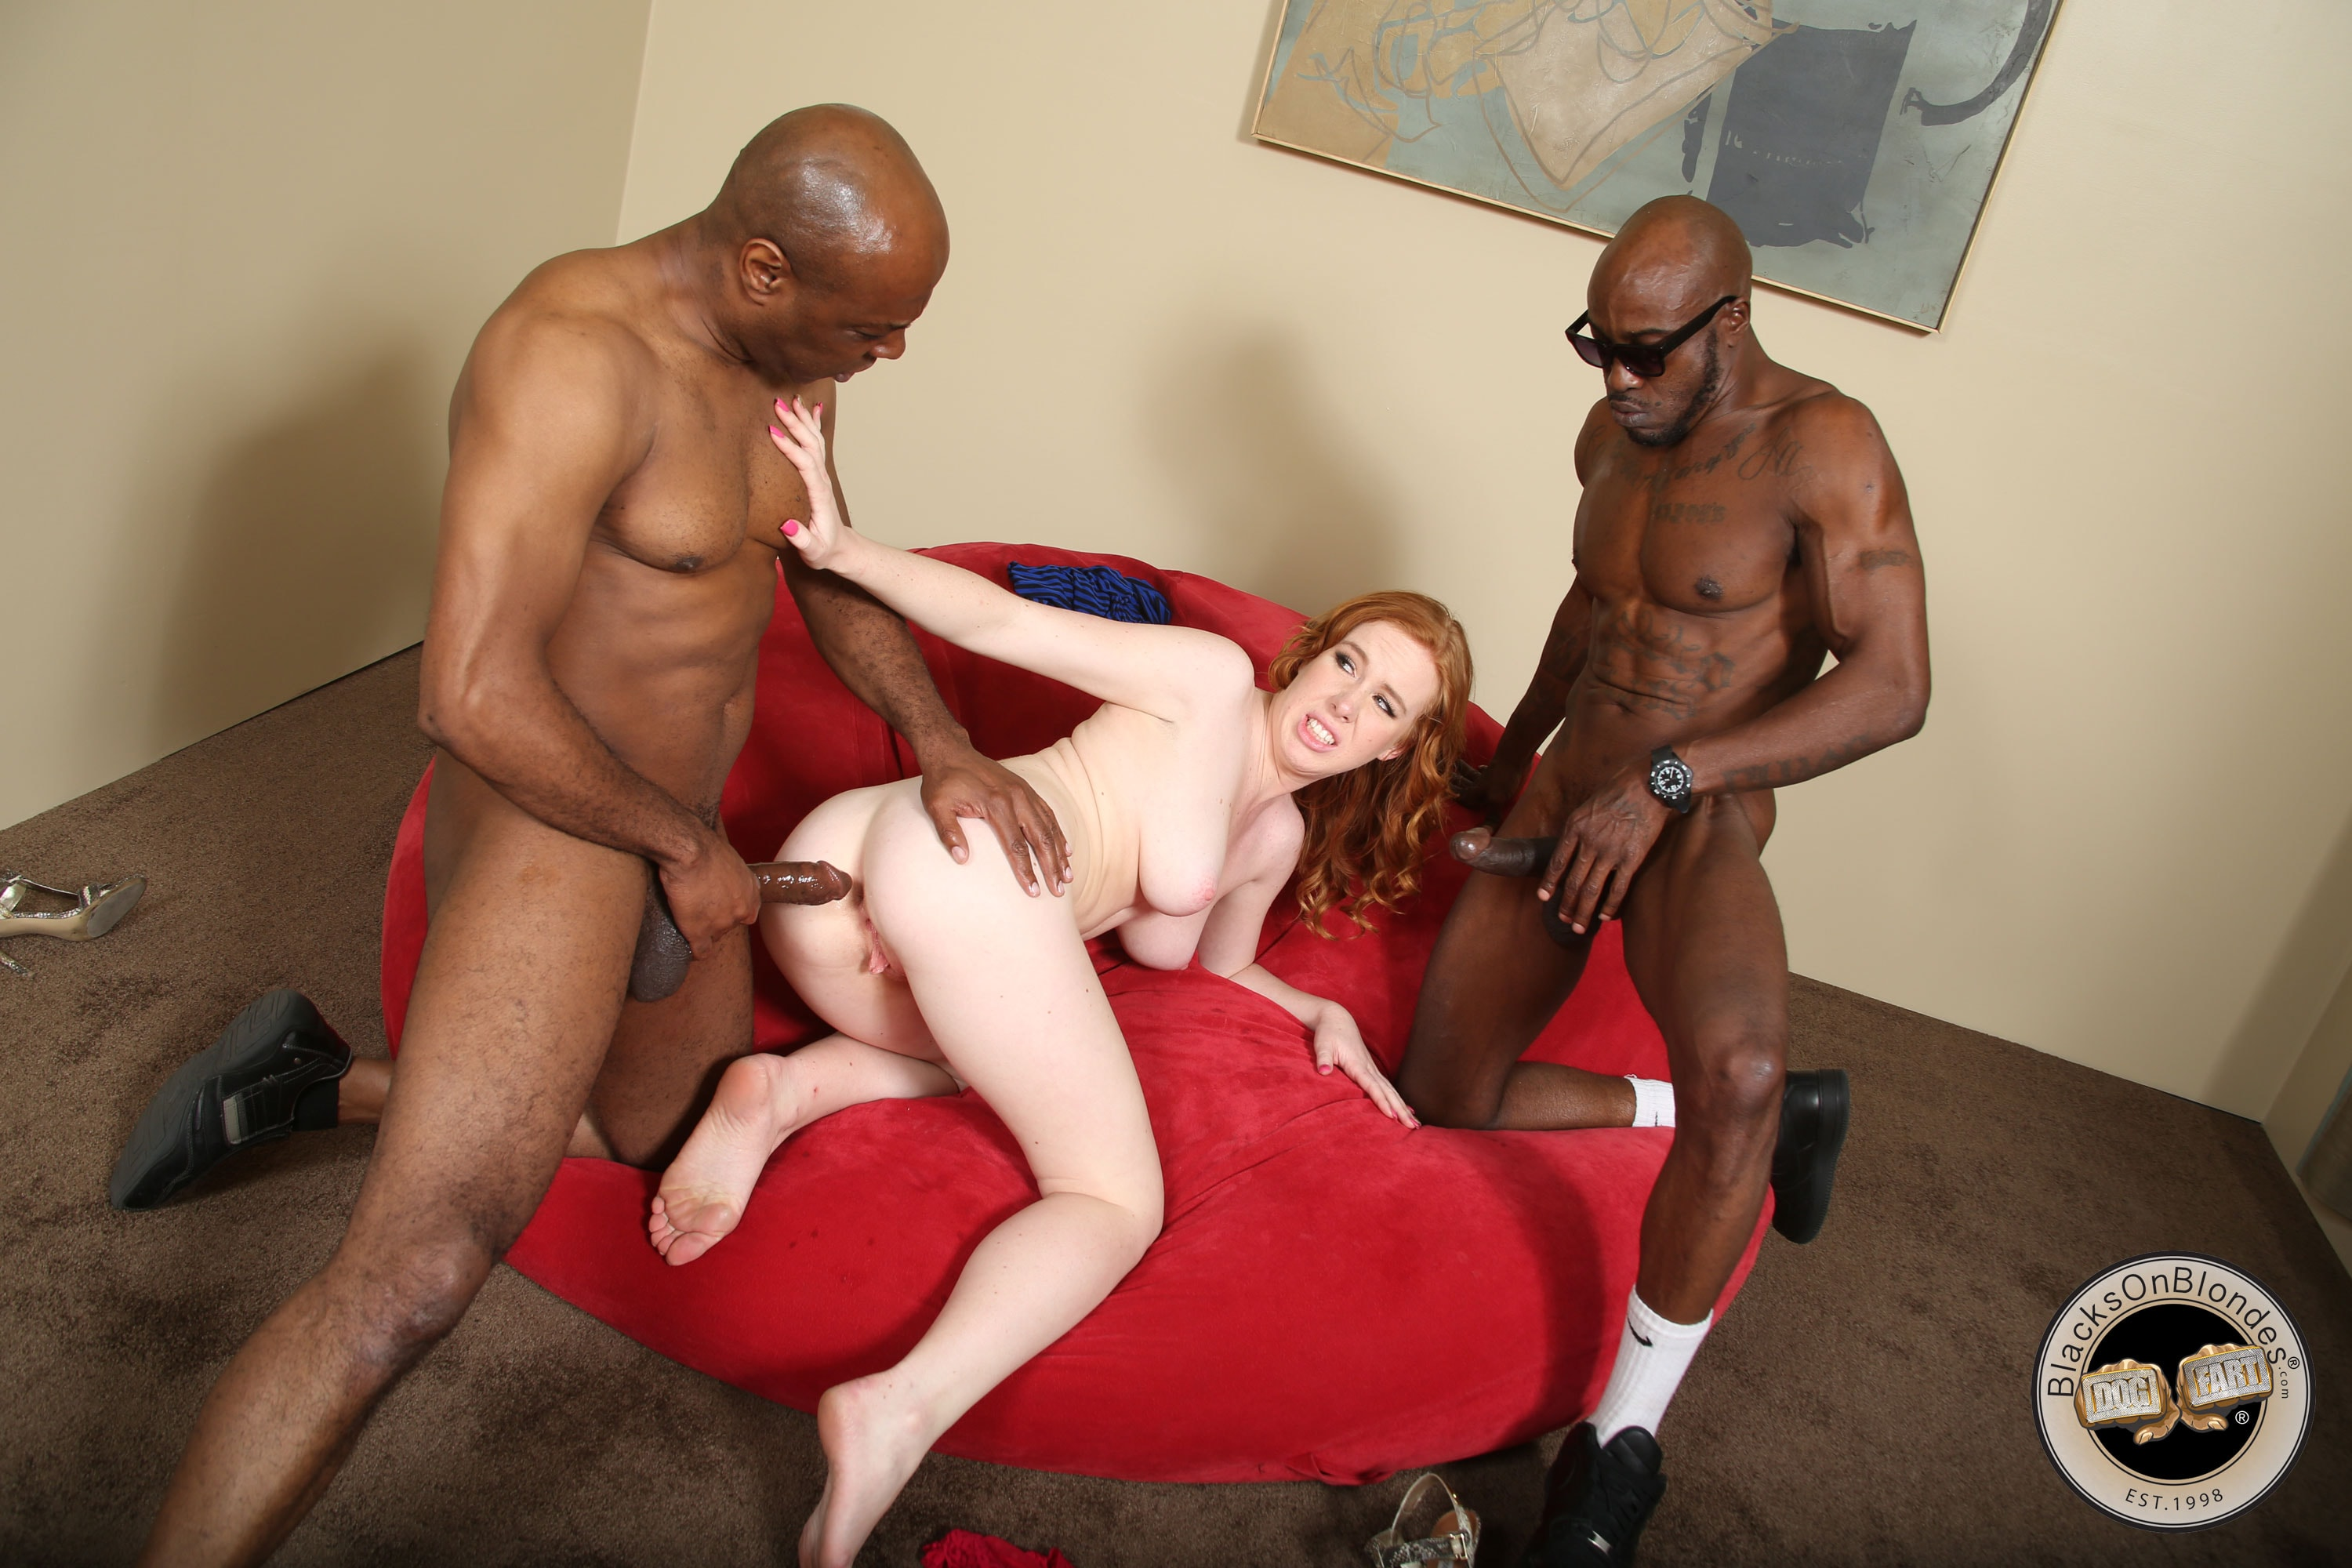 Kierra Wilde - Kierra Wilde - Blacks On Blondes | Picture (16)